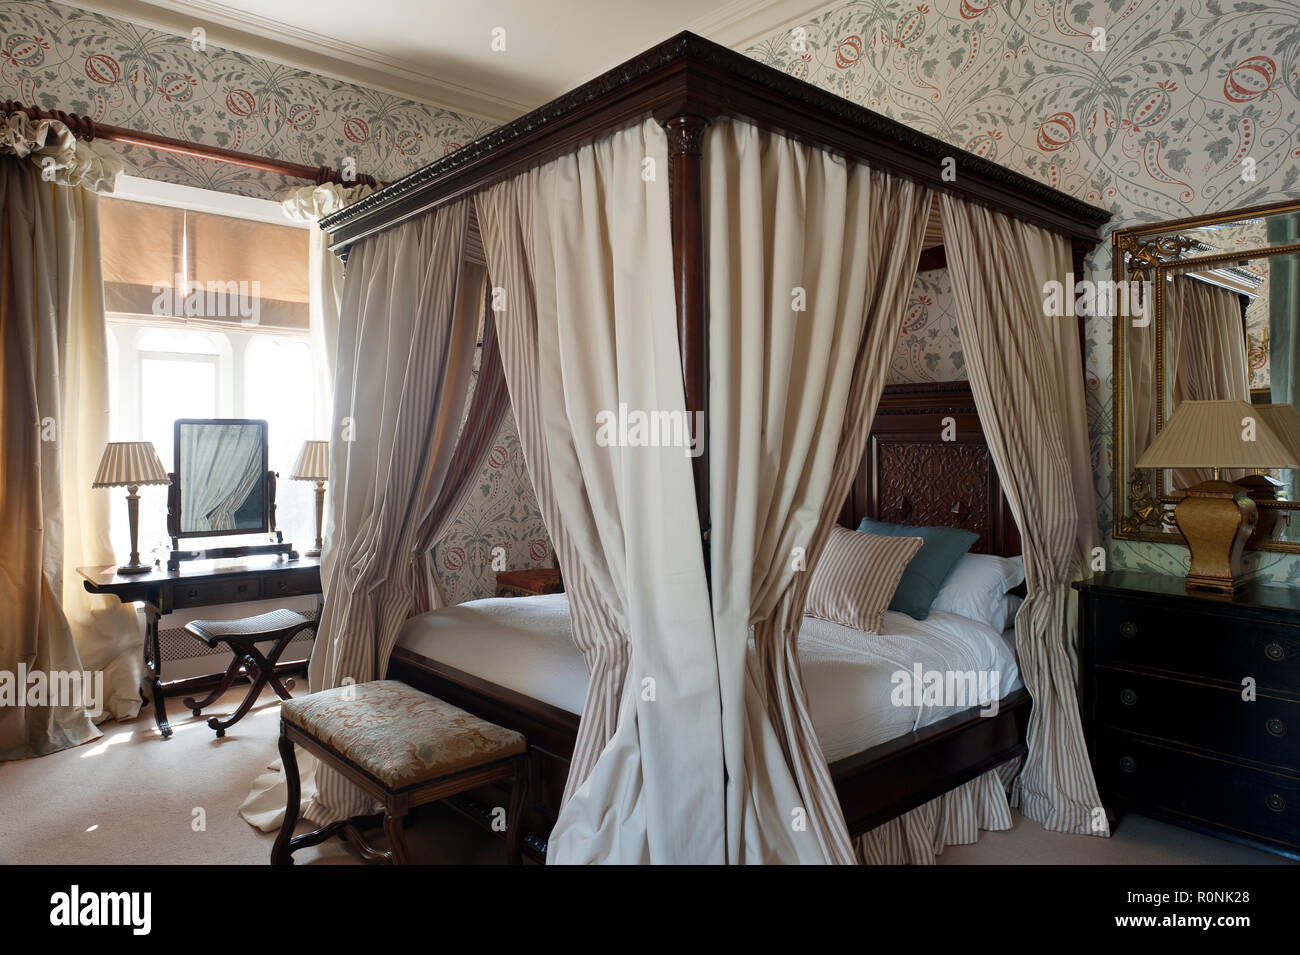 Four Poster Bed In Carlton Towers In Yorkshire   Stock Image